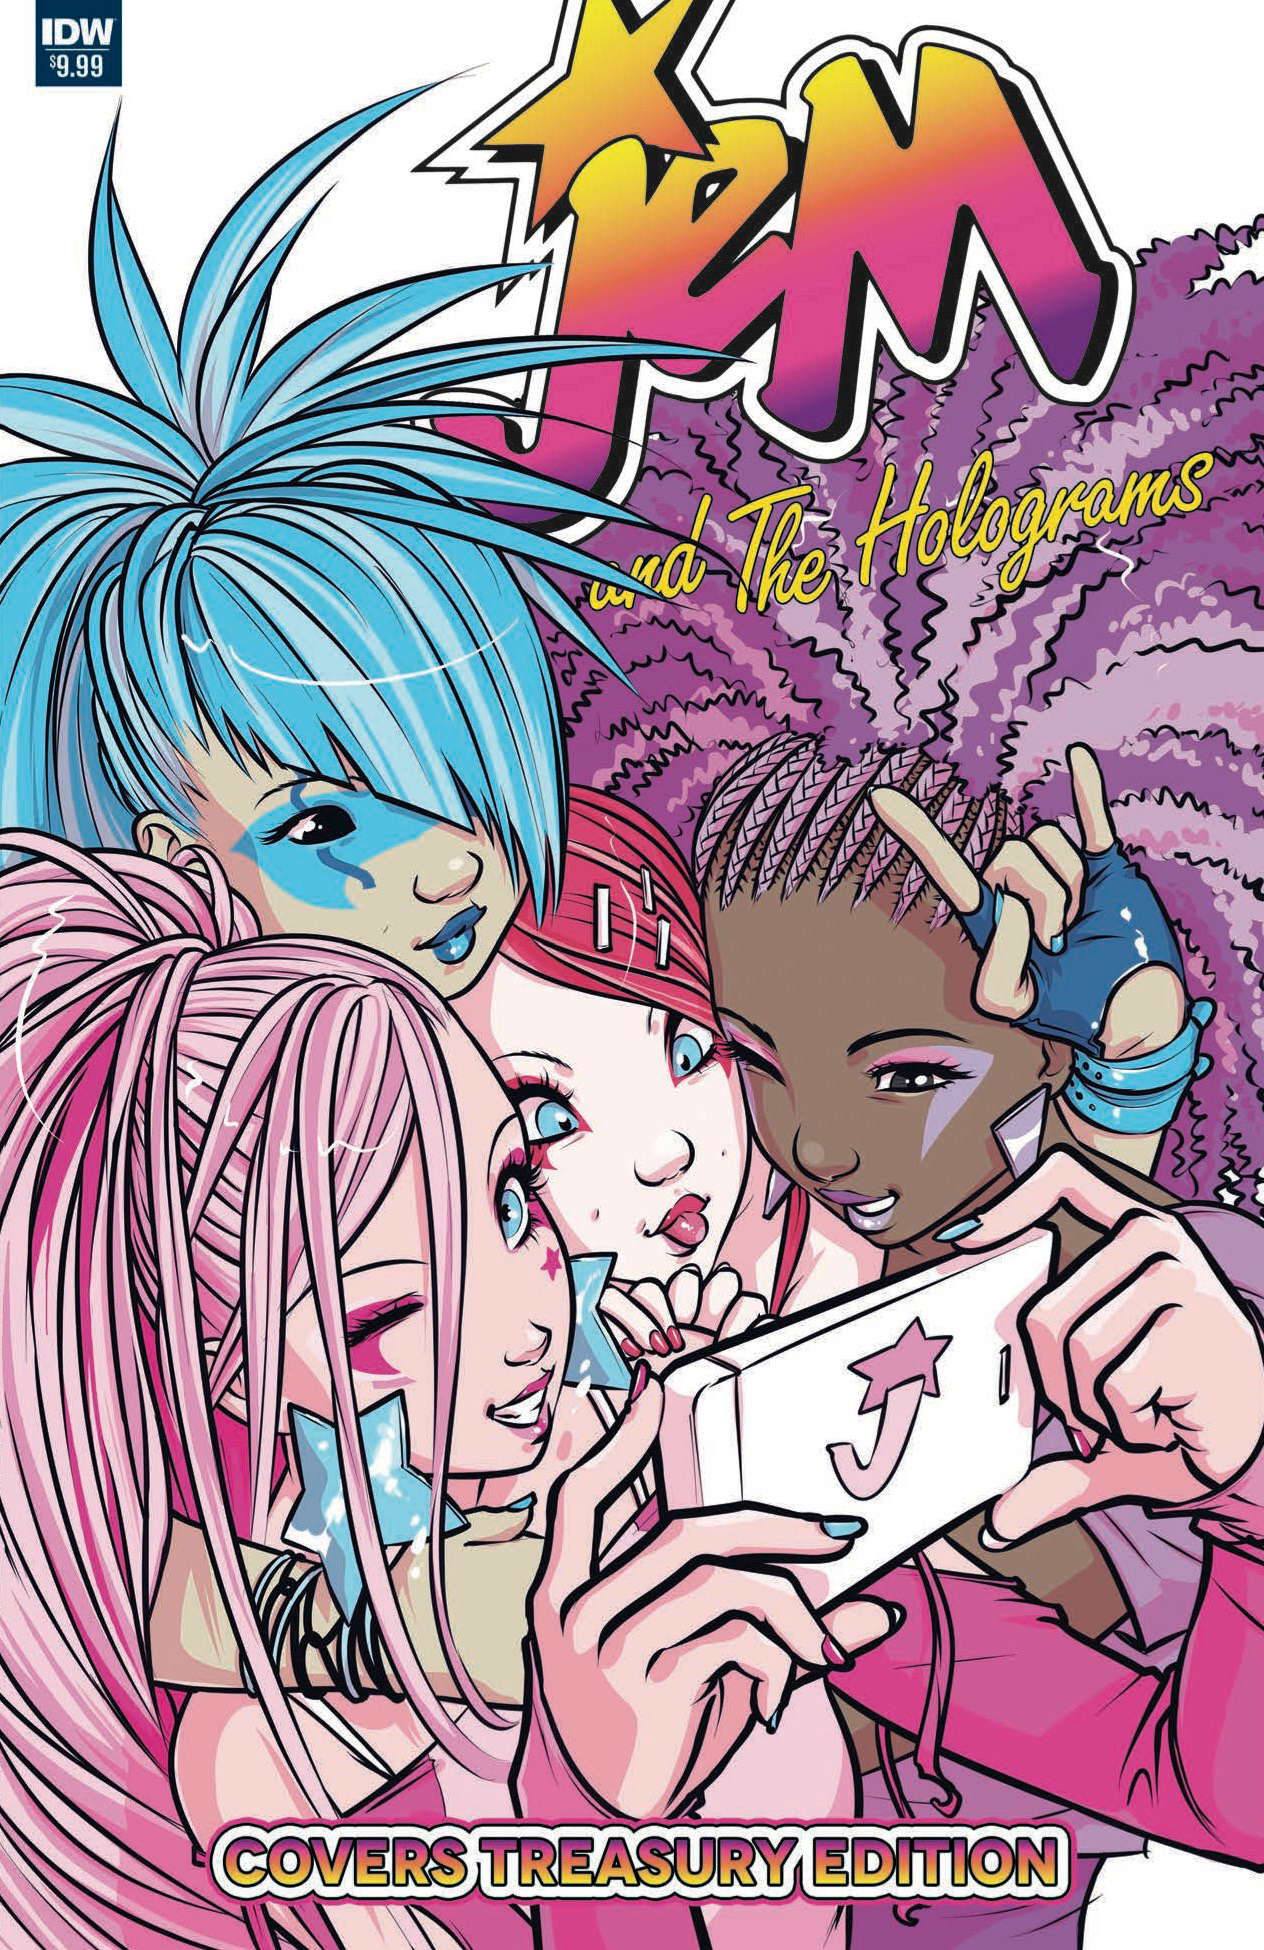 JEM & THE HOLOGRAMS COVERS TREASURY ED